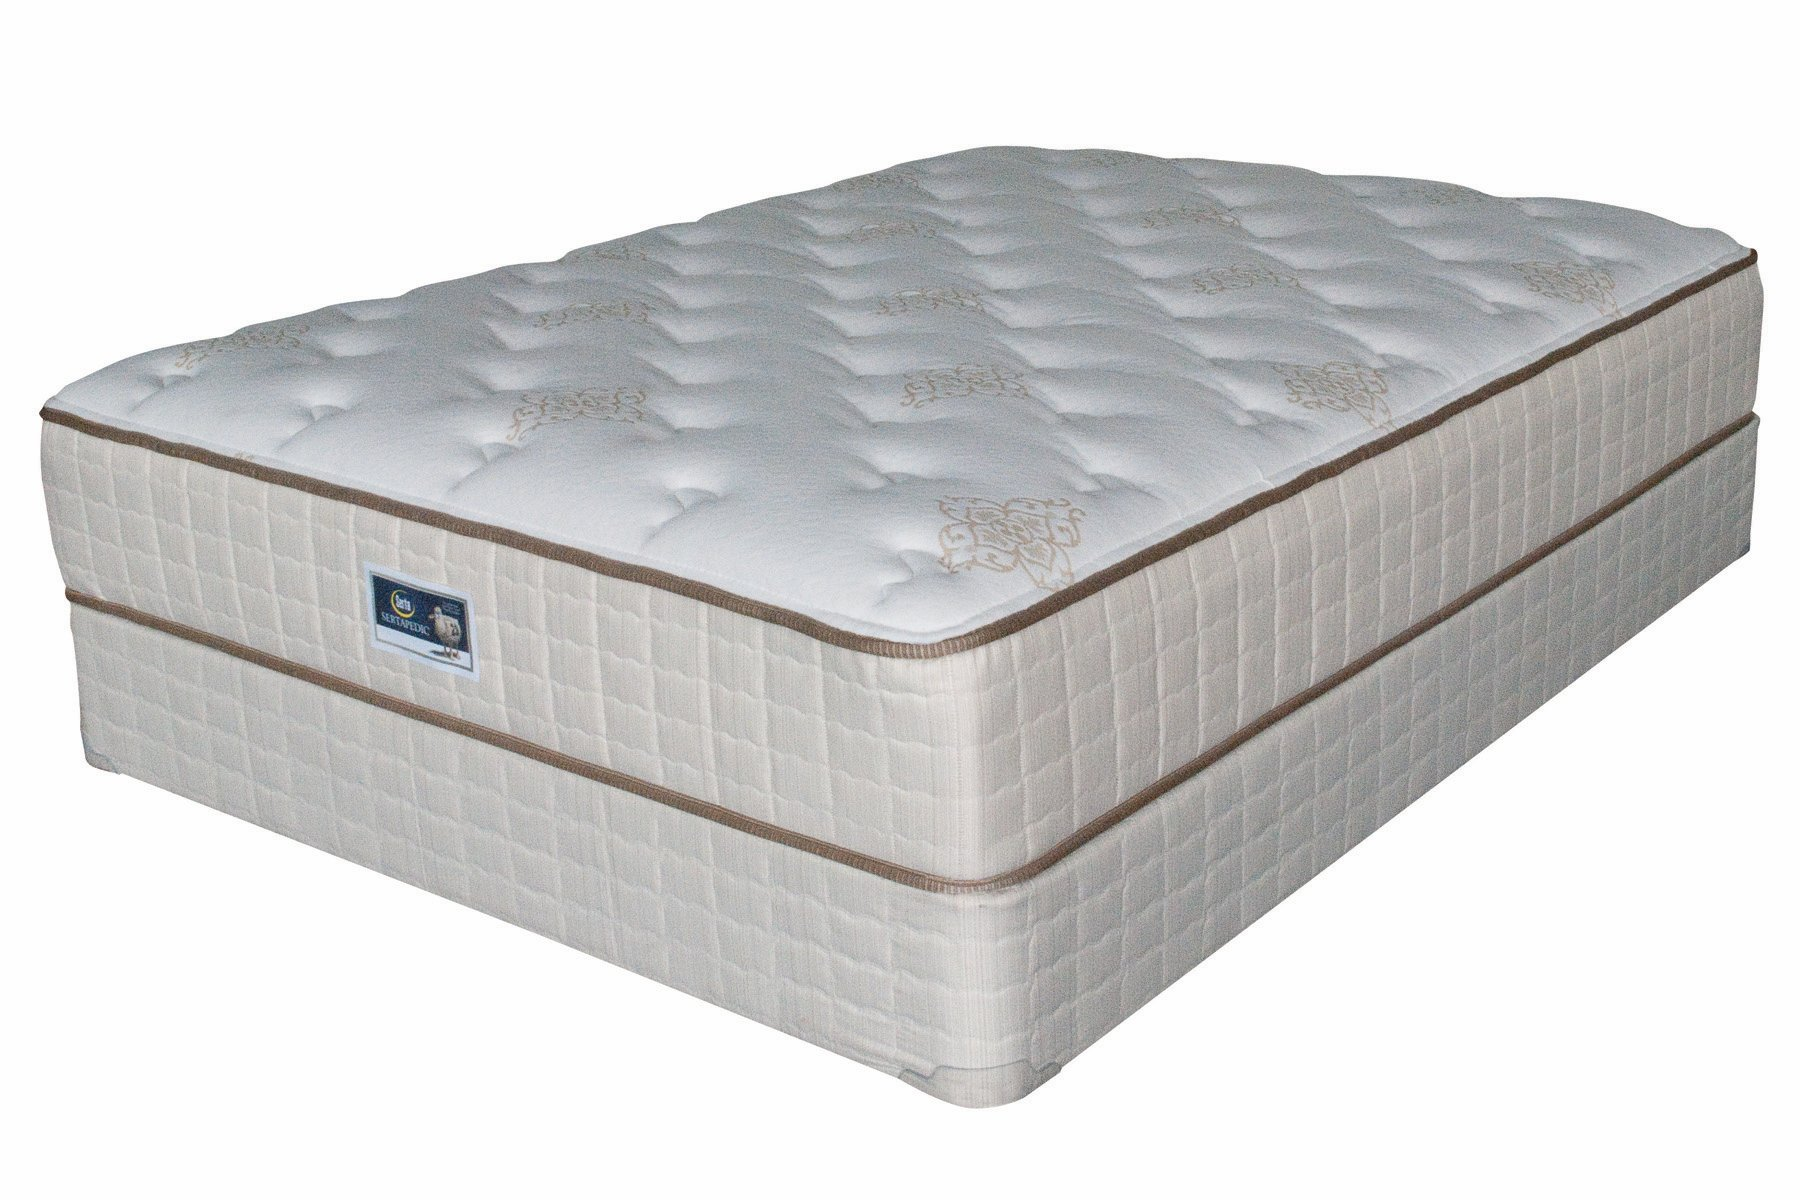 Sertapedic Malta Plush Mattress Reviews GoodBed